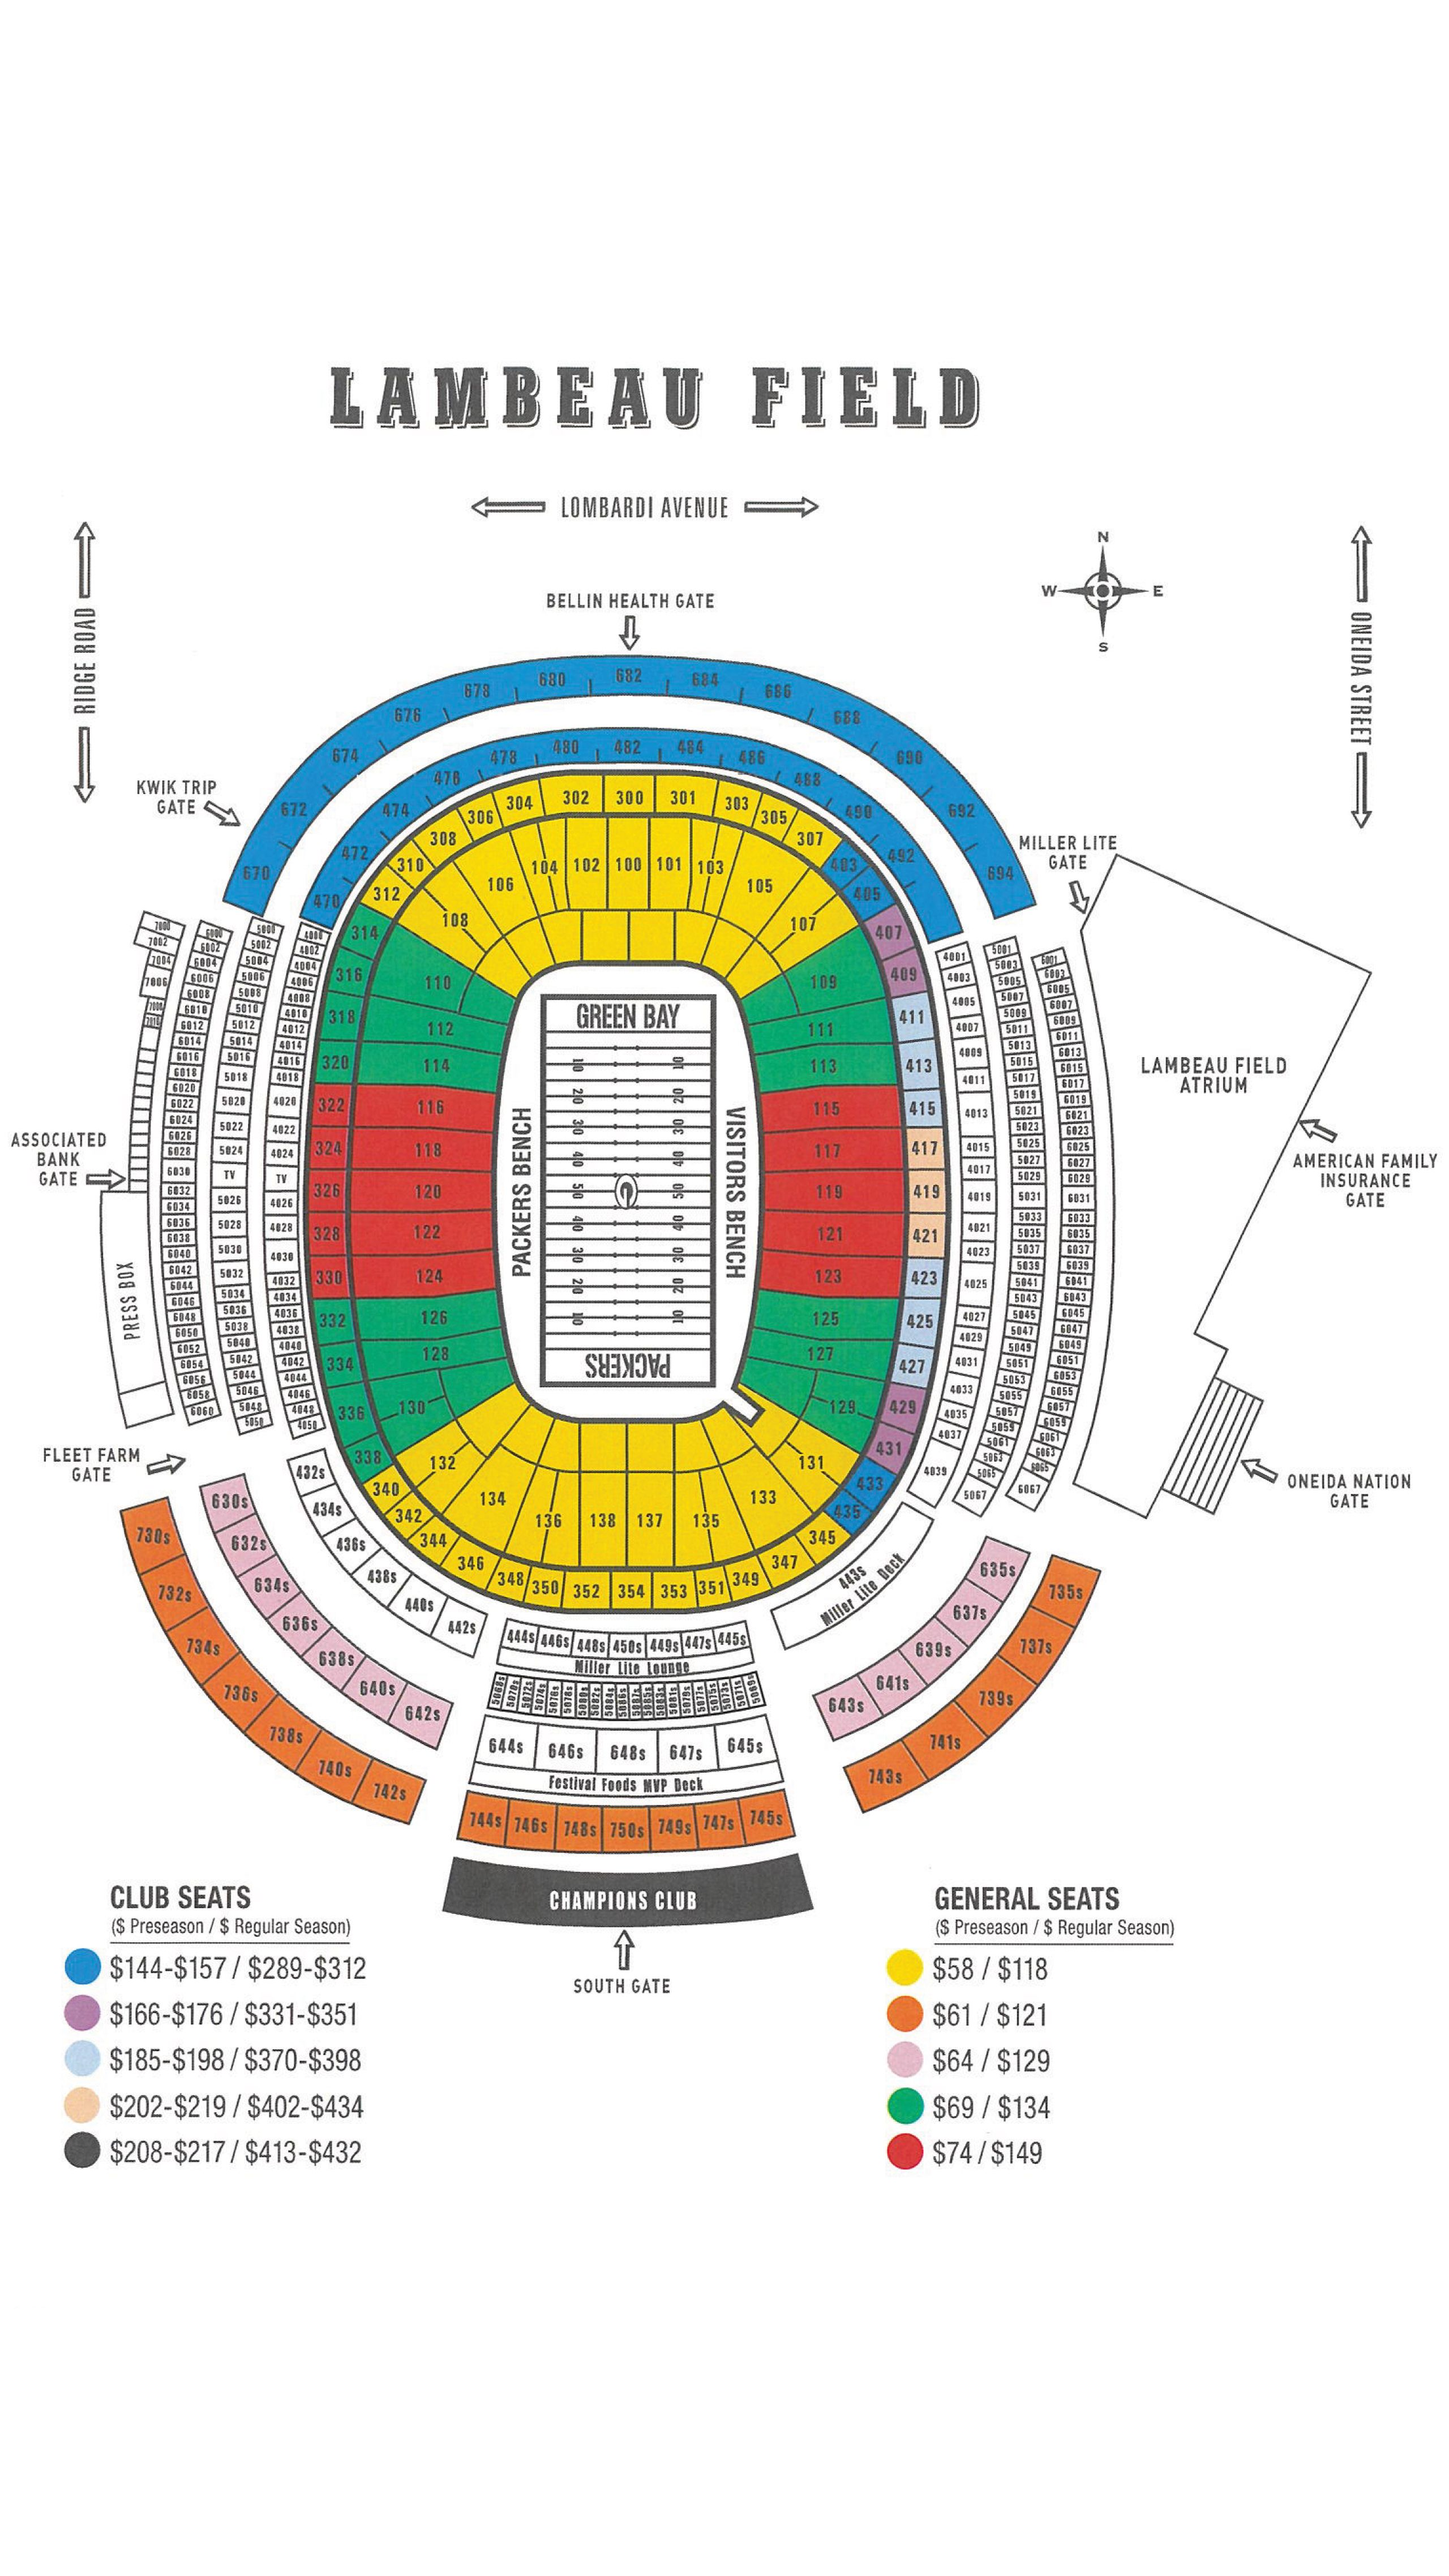 2020-lambeau-field-seating-chart-2560